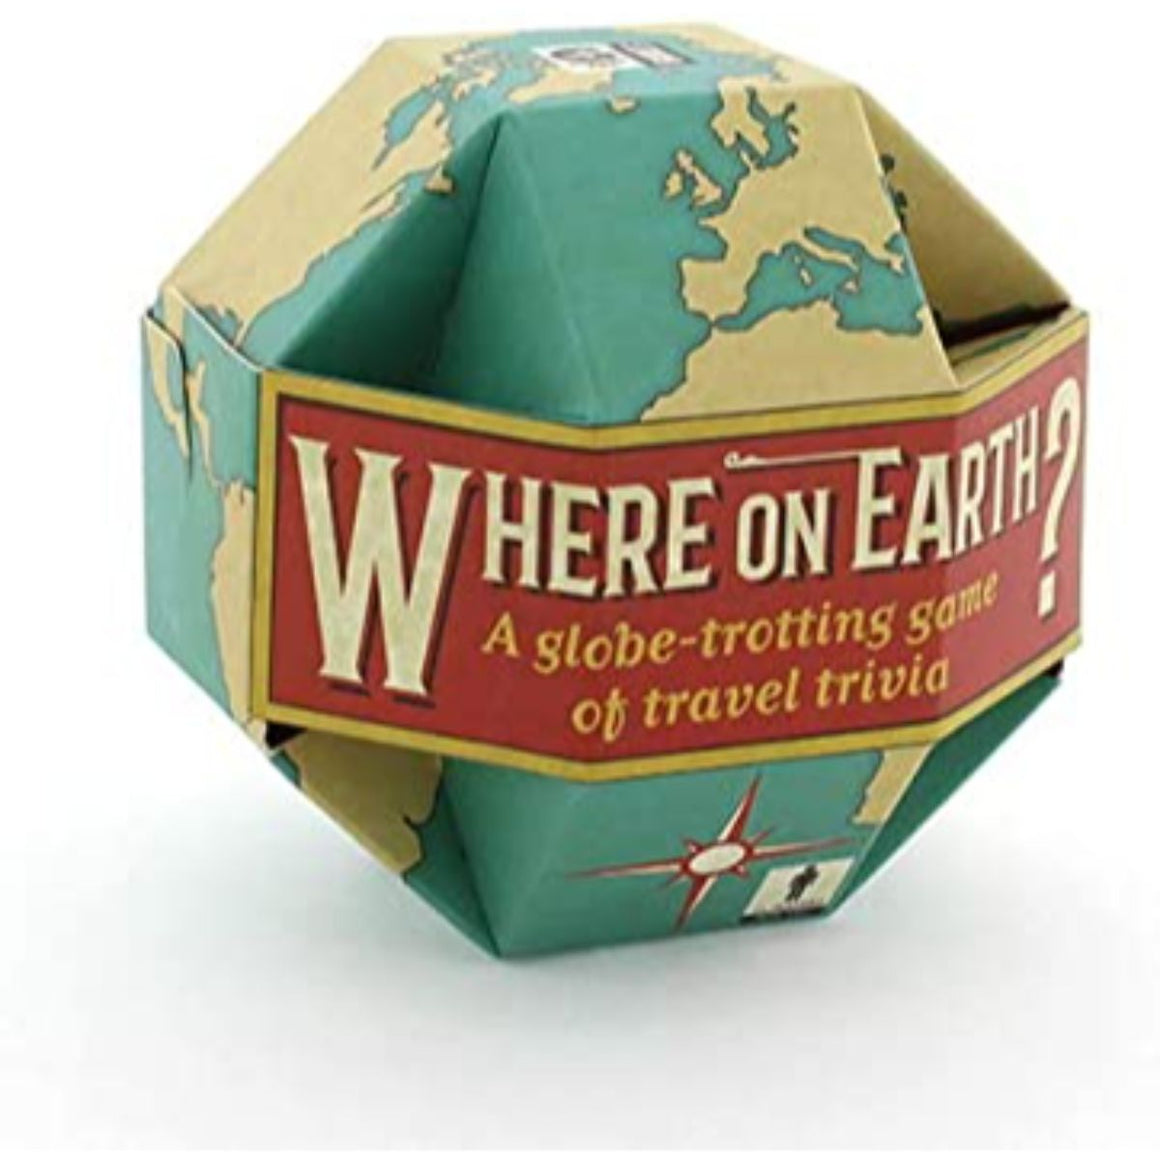 Where on Earth? Trivia packaging featuring a unique shaped globe